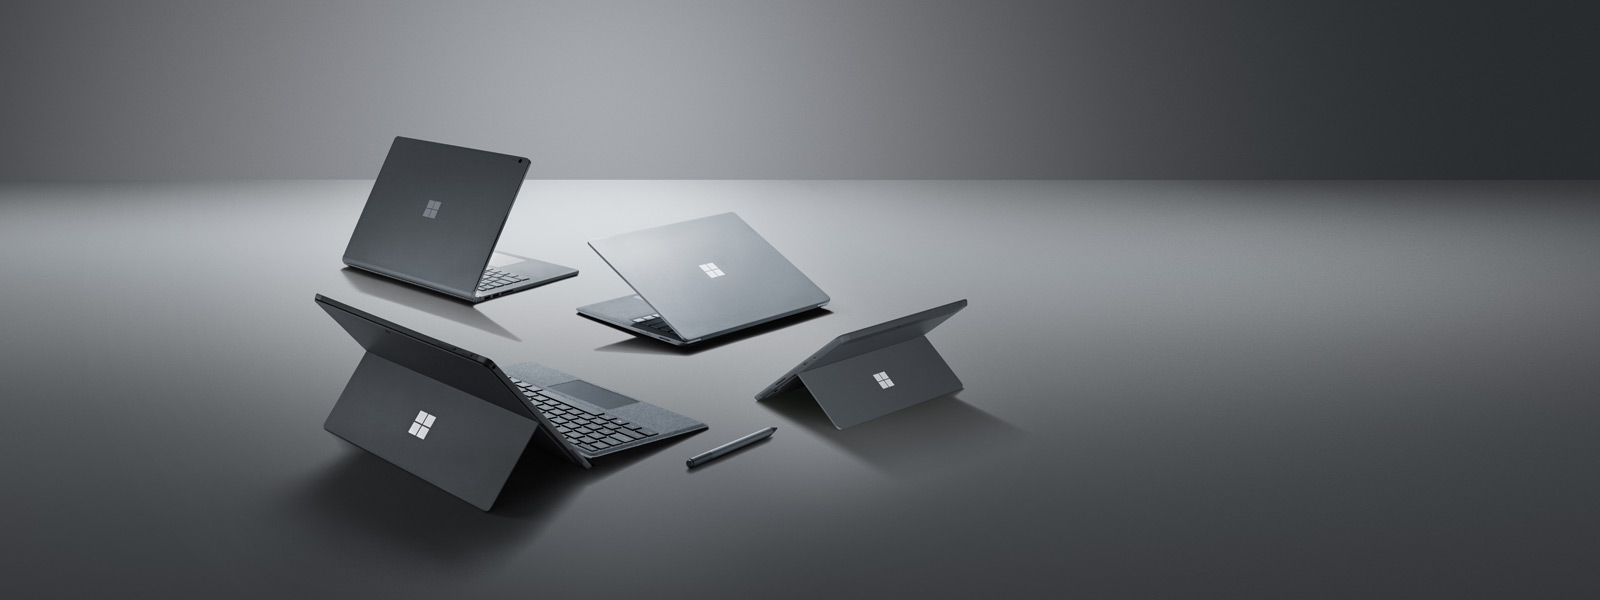 Surface Go、Surface Book 2、Surface Pro 6(亮鉑金)和 Surface Laptop 2(亮鉑金)、Surface Pen